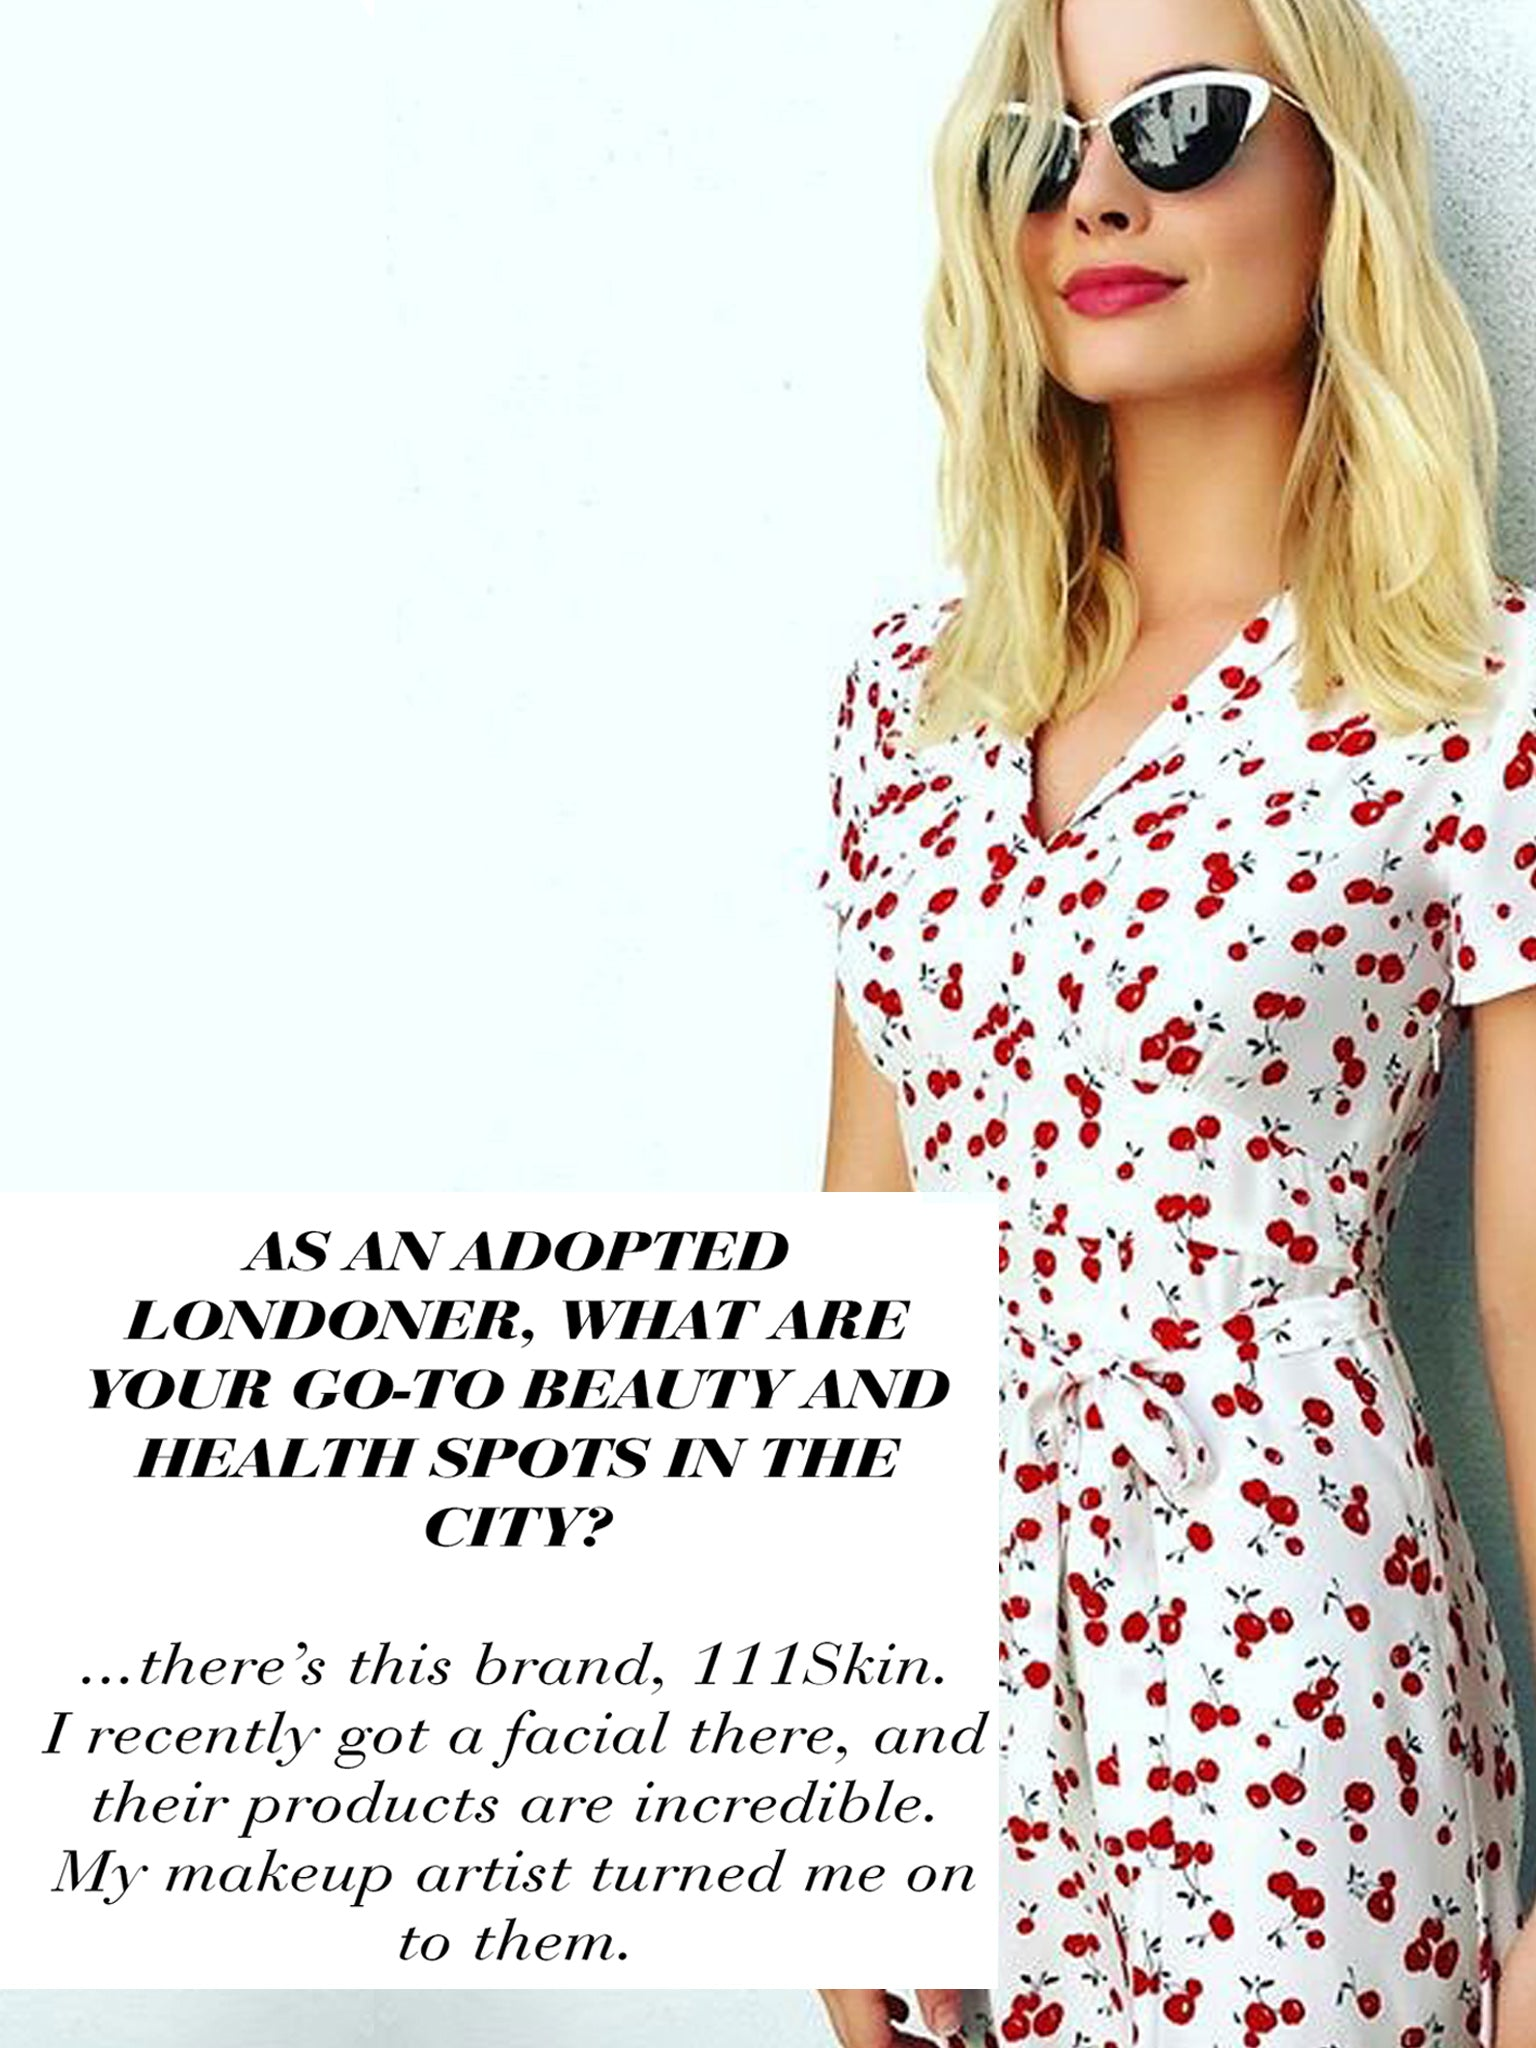 Hollywood Star Margot Robbie shows her appreciation for 111SKIN